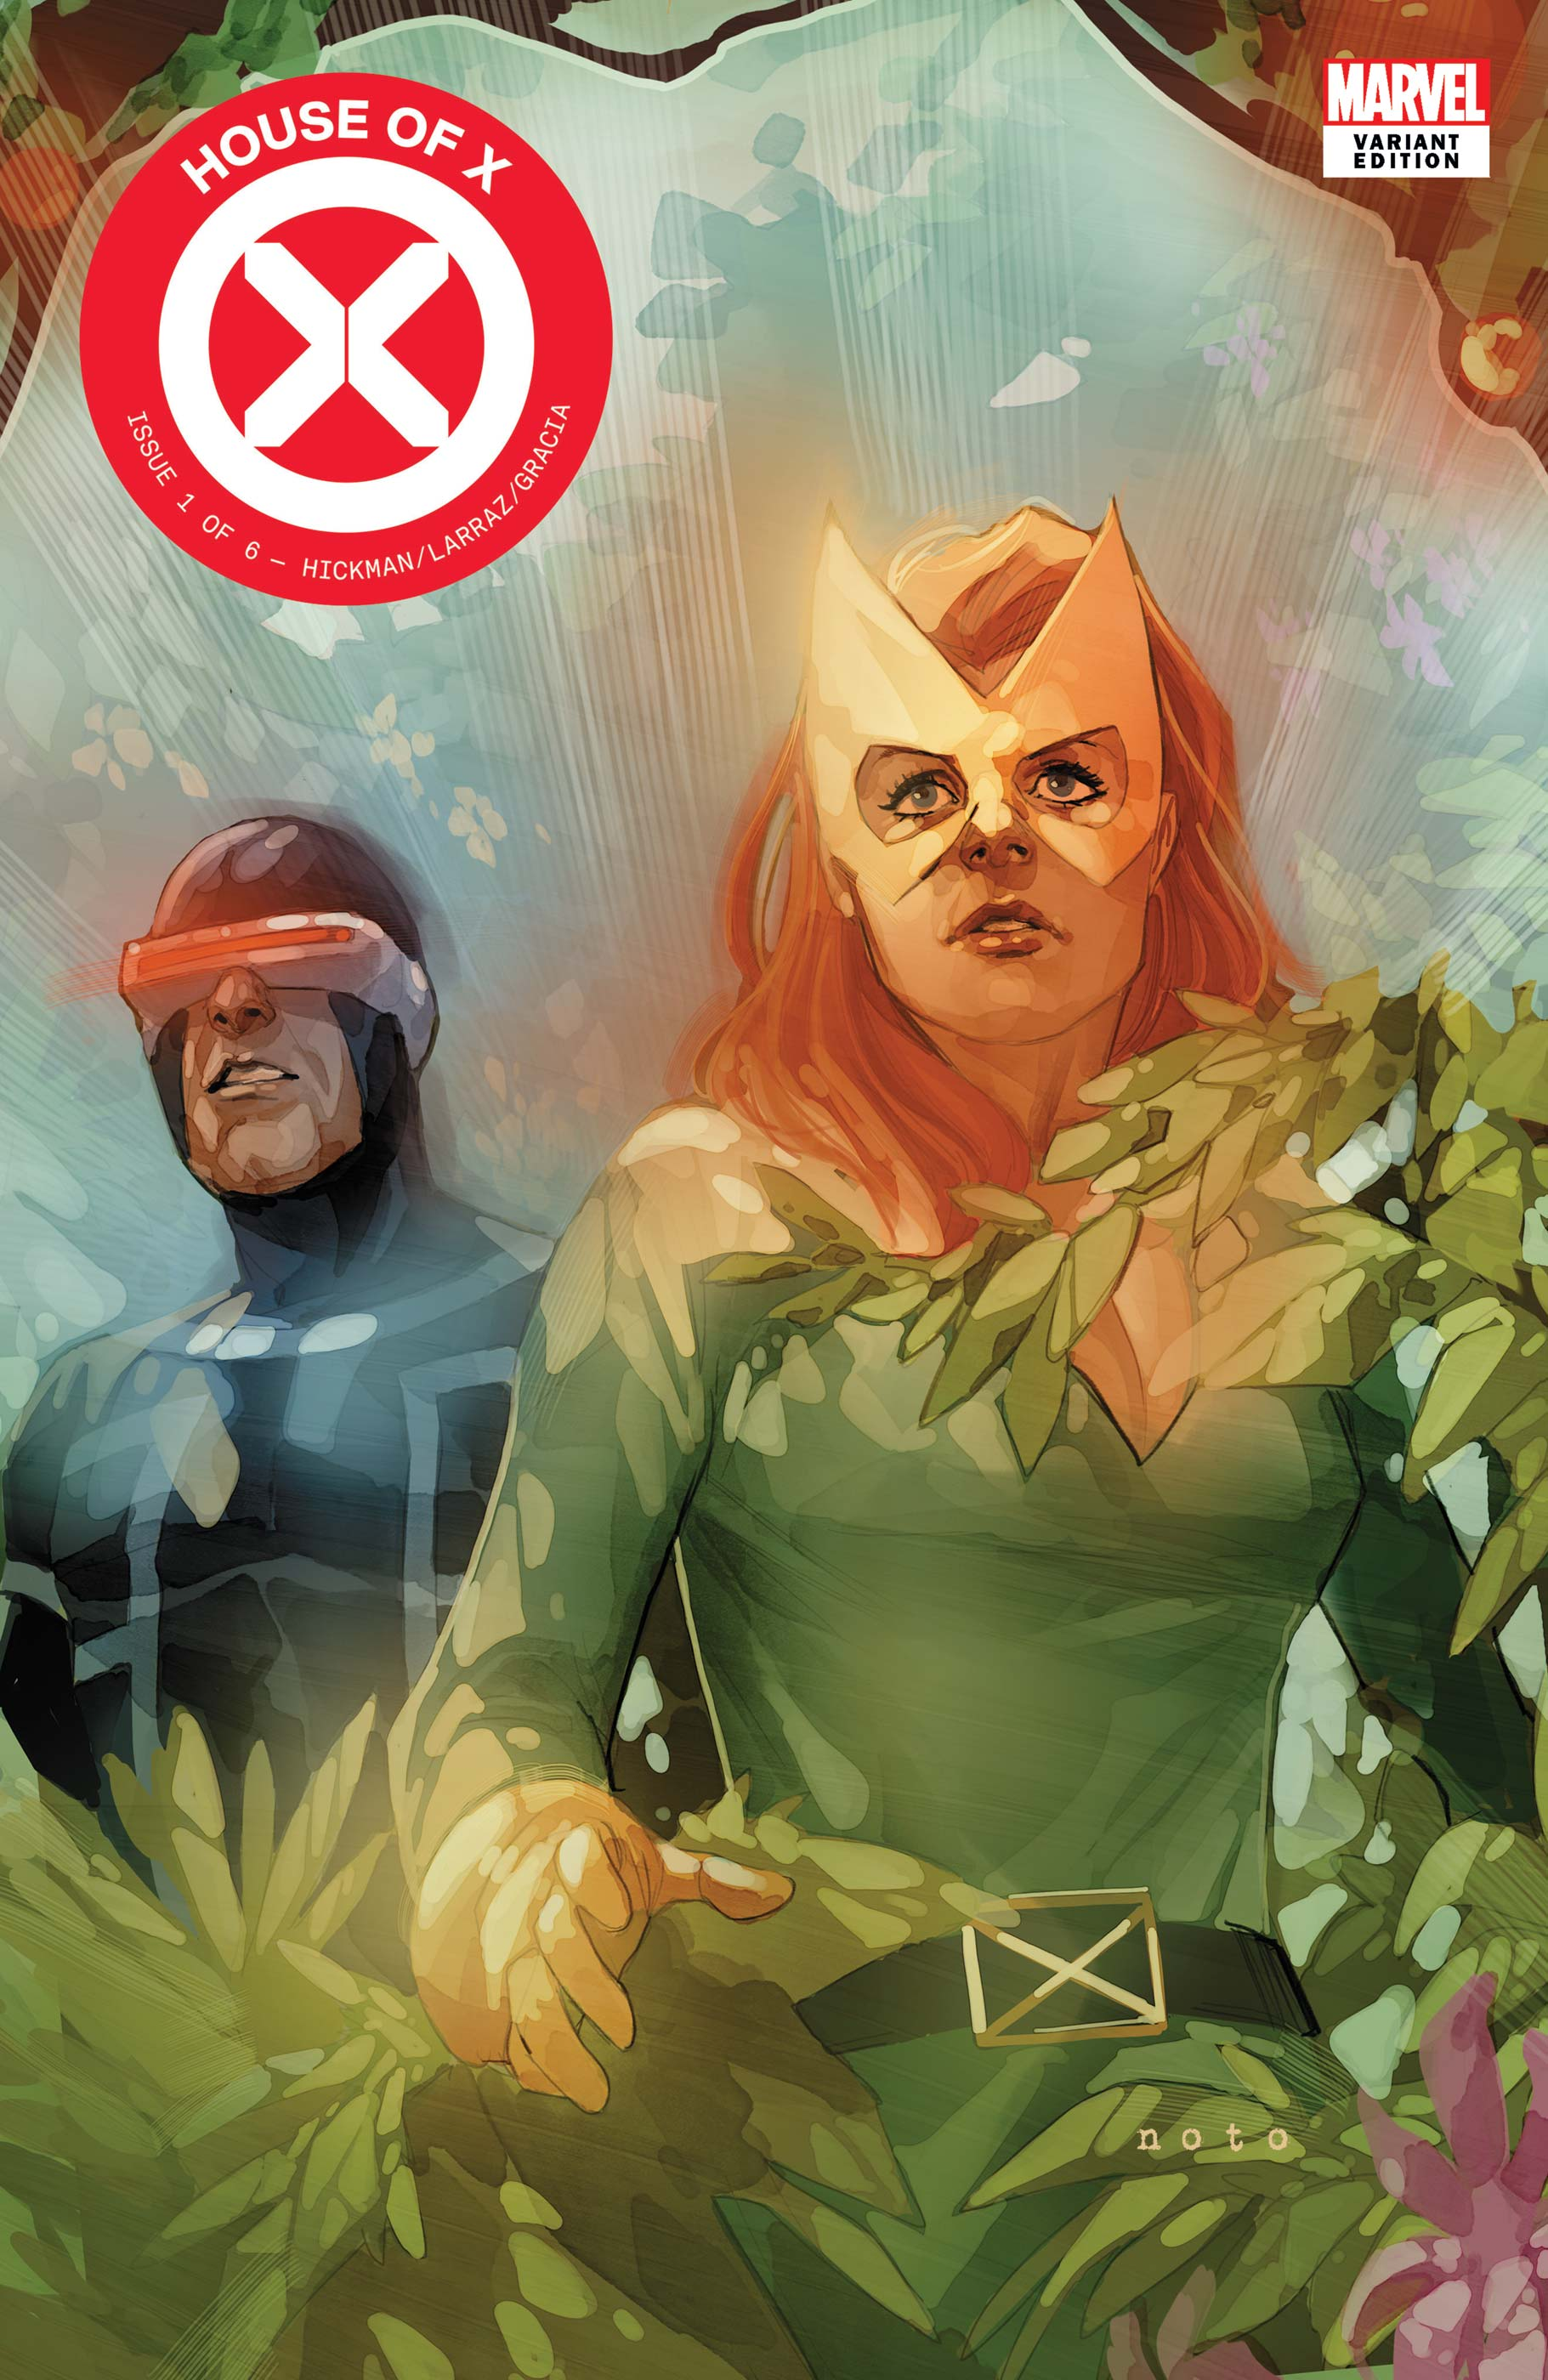 House of X (2019) #1 (Variant)